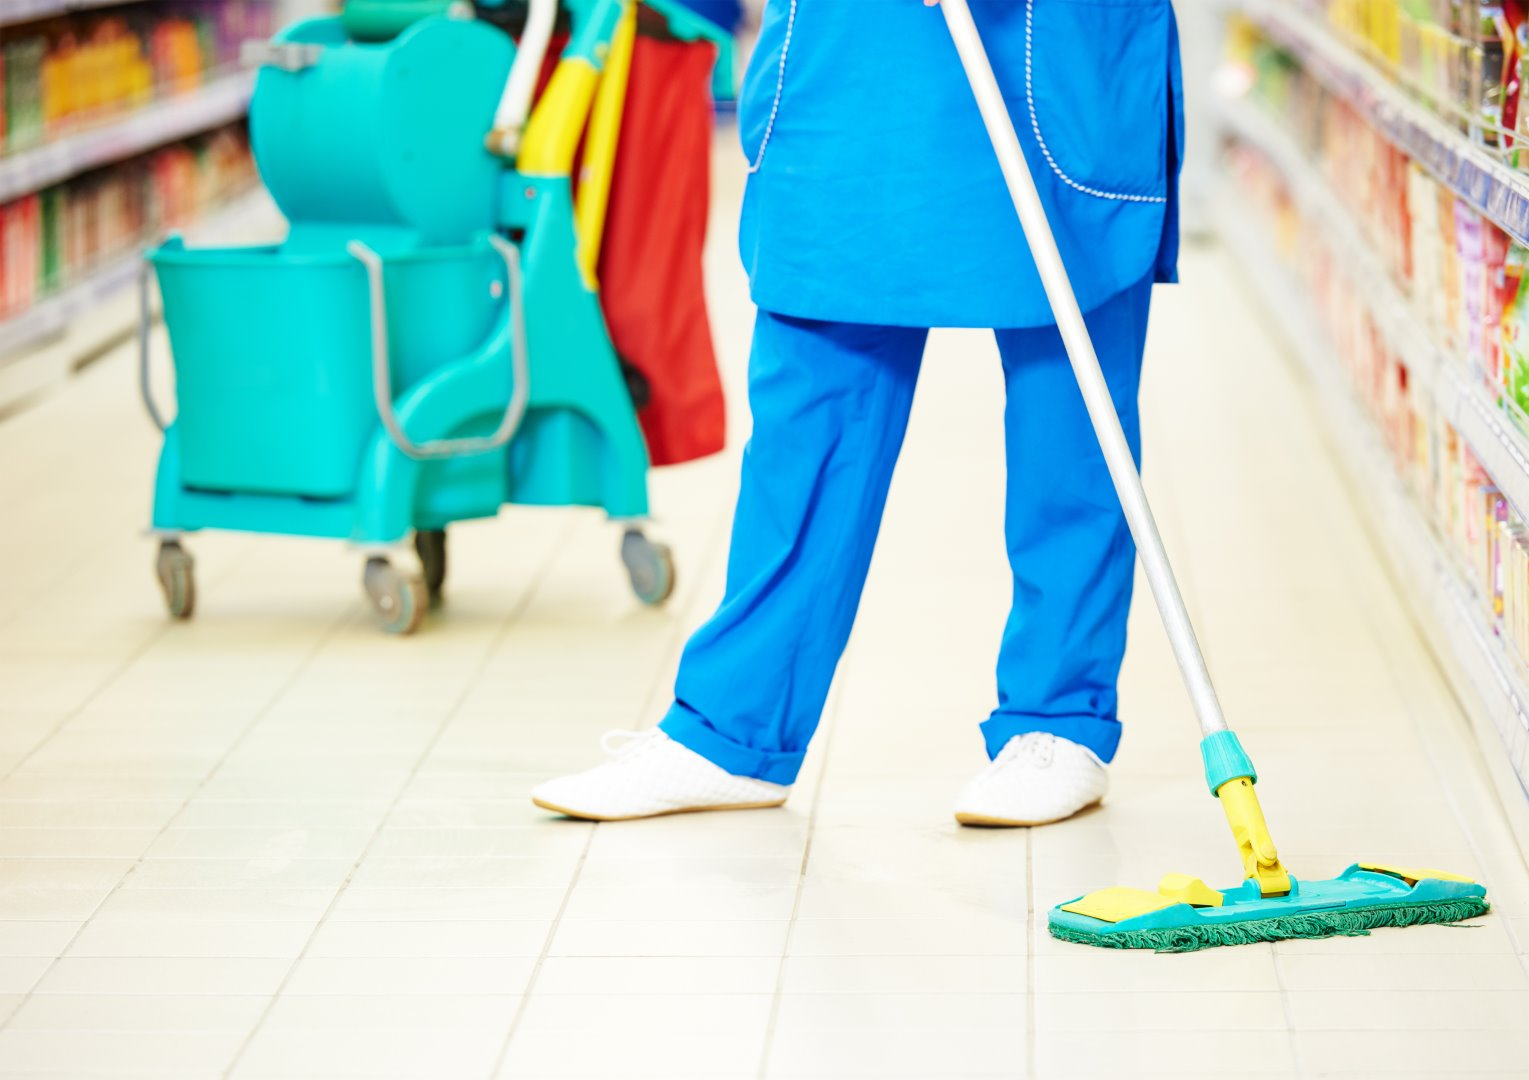 1 Extreme Cleaning Services In South Africa